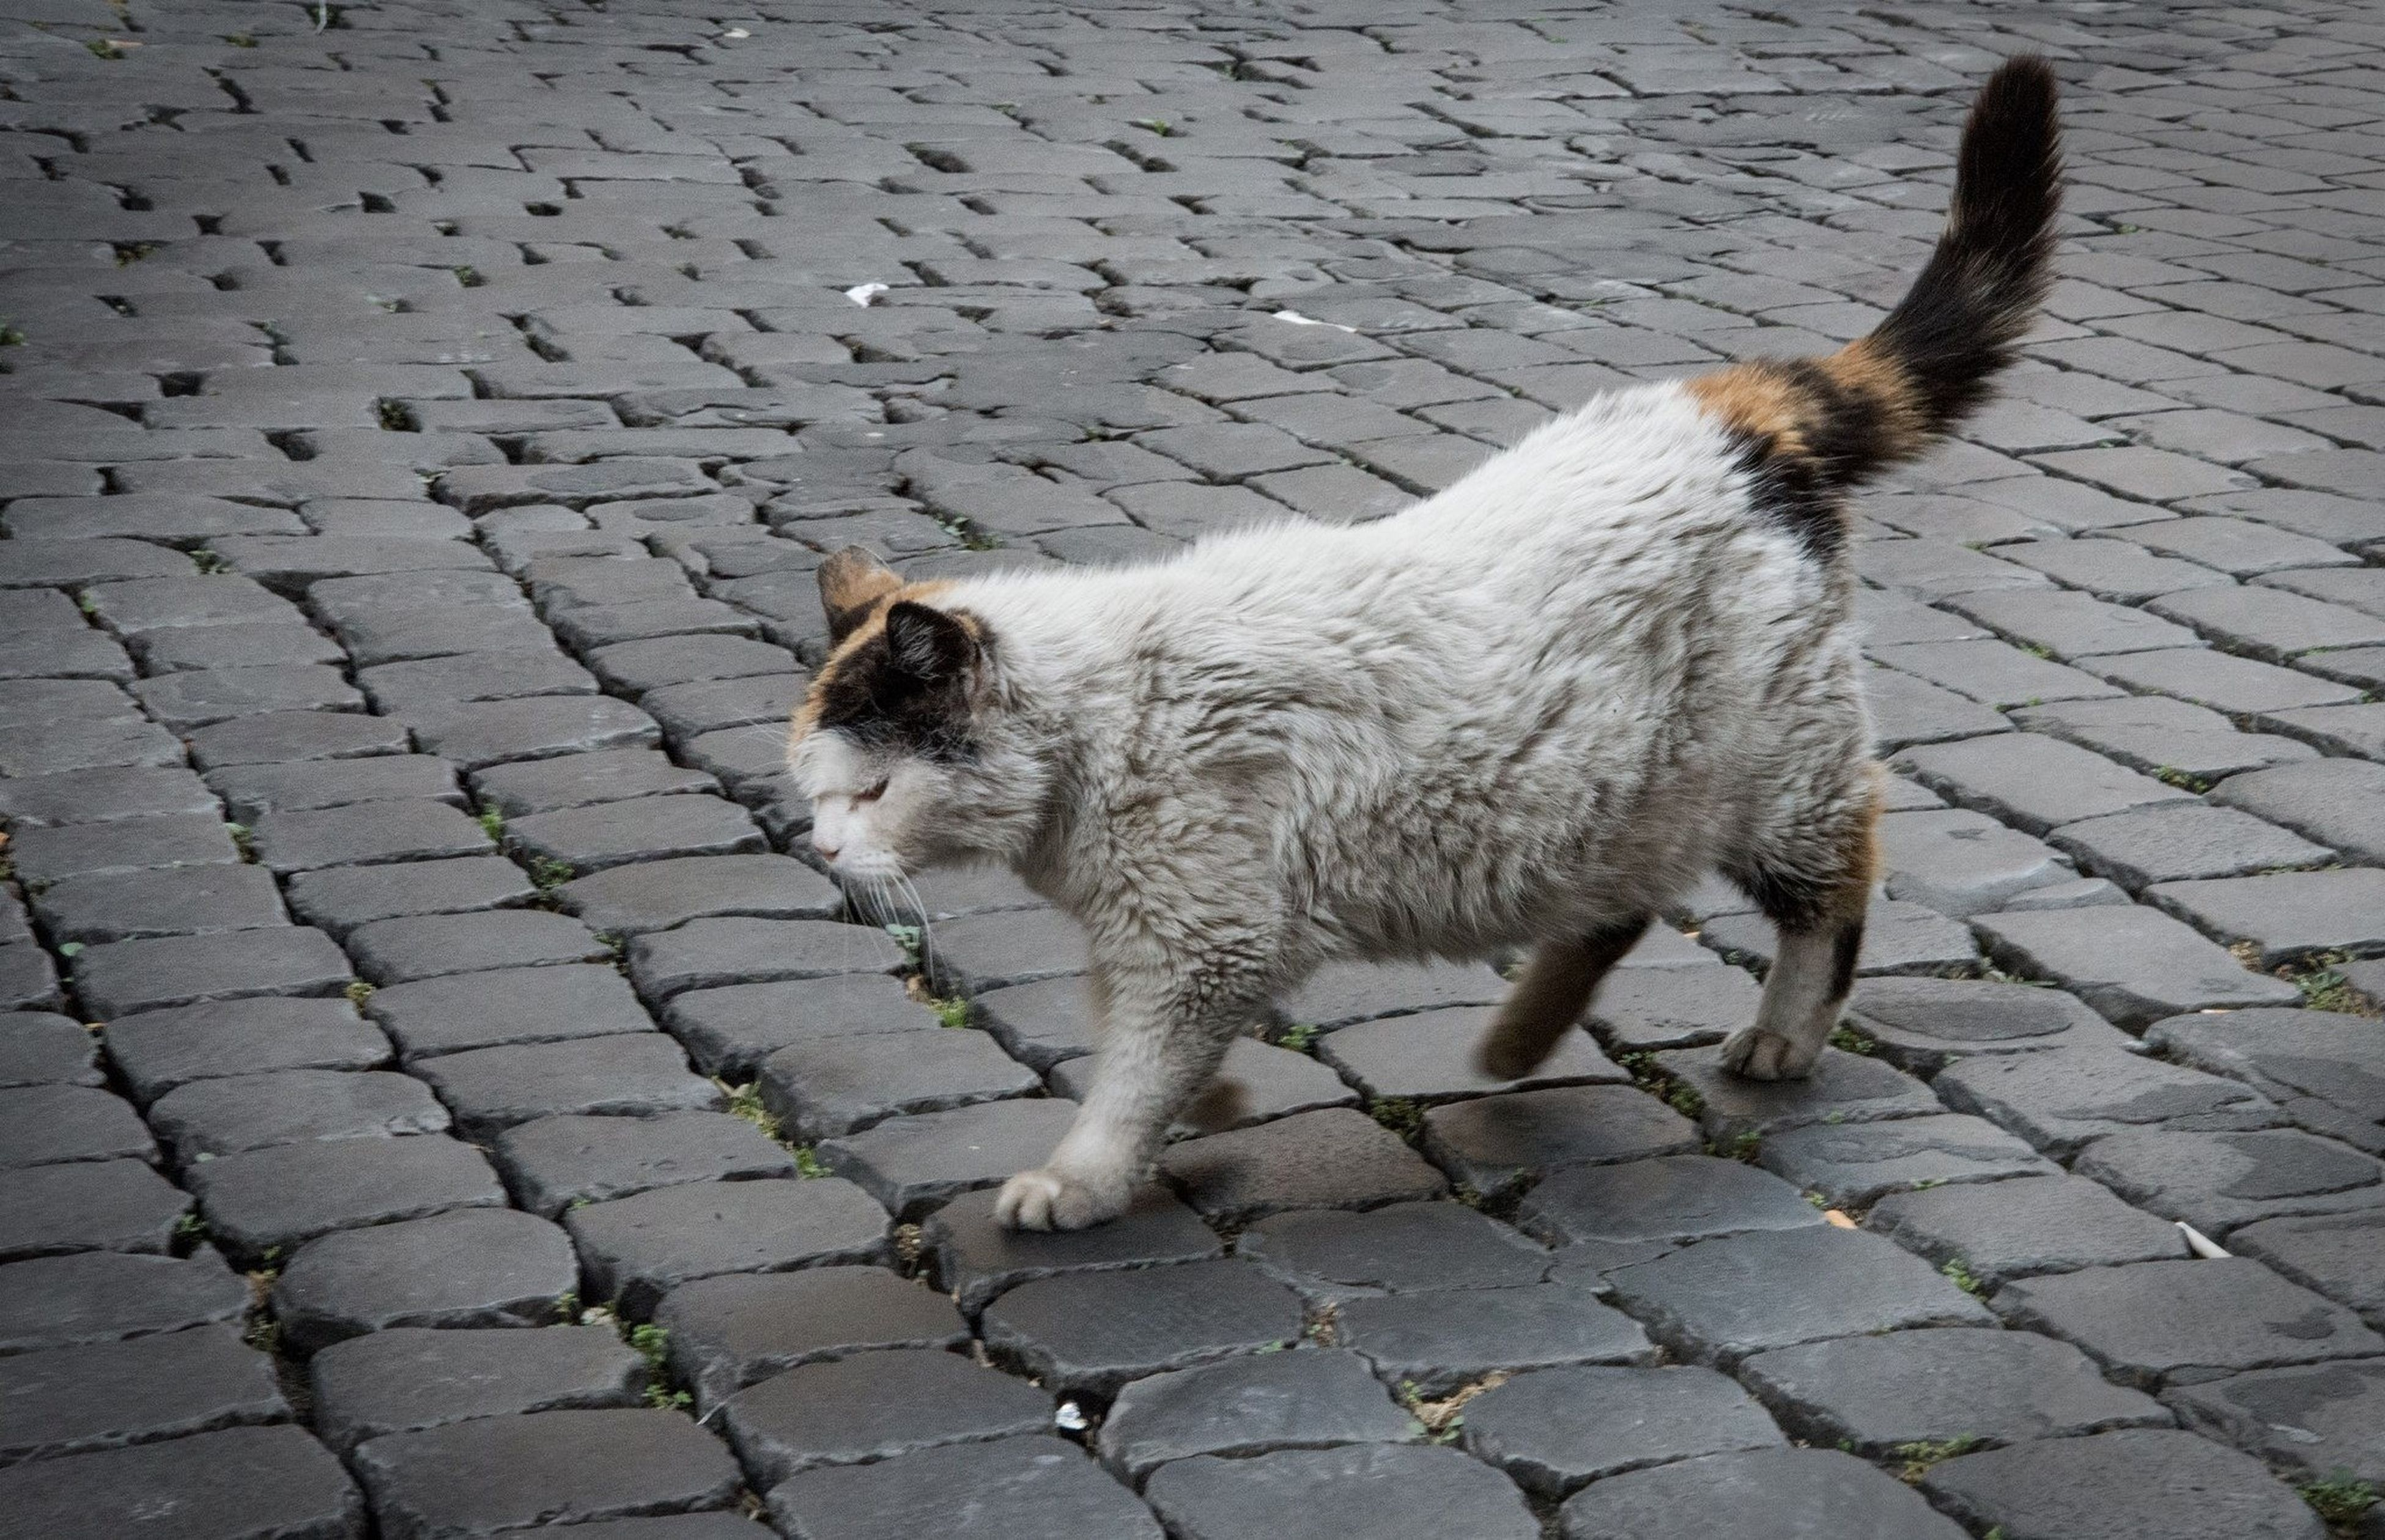 animal themes, one animal, cobblestone, domestic cat, street, cat, pets, domestic animals, paving stone, mammal, high angle view, sidewalk, footpath, outdoors, feline, day, relaxation, no people, pavement, full length